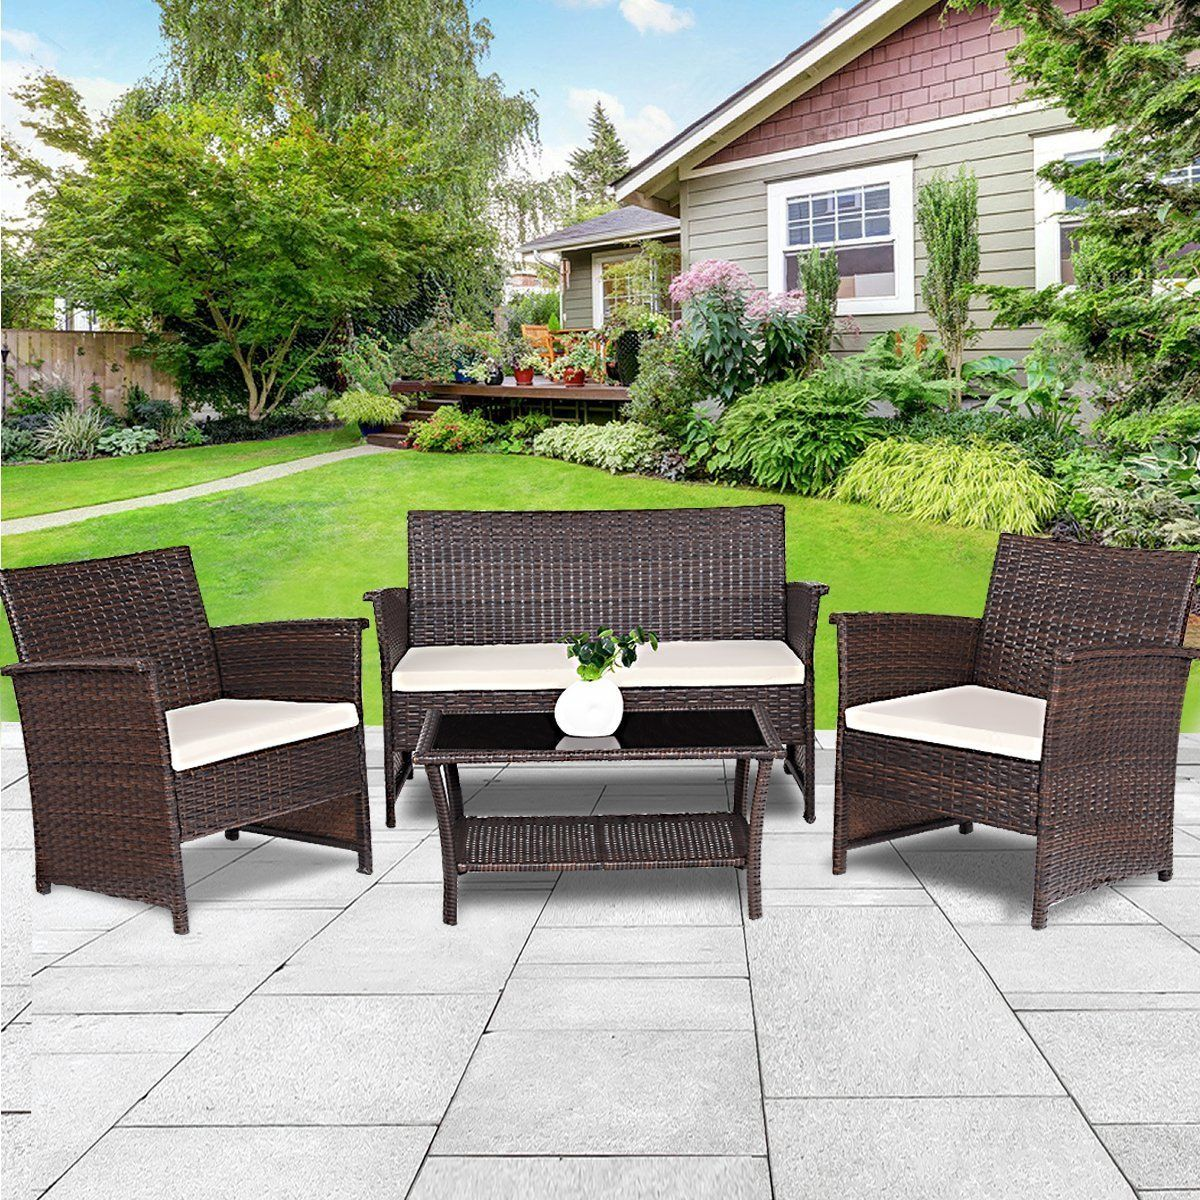 Tangkula Outdoor Patio Furniture 4 Piece Cushioned Sofa And Coffee